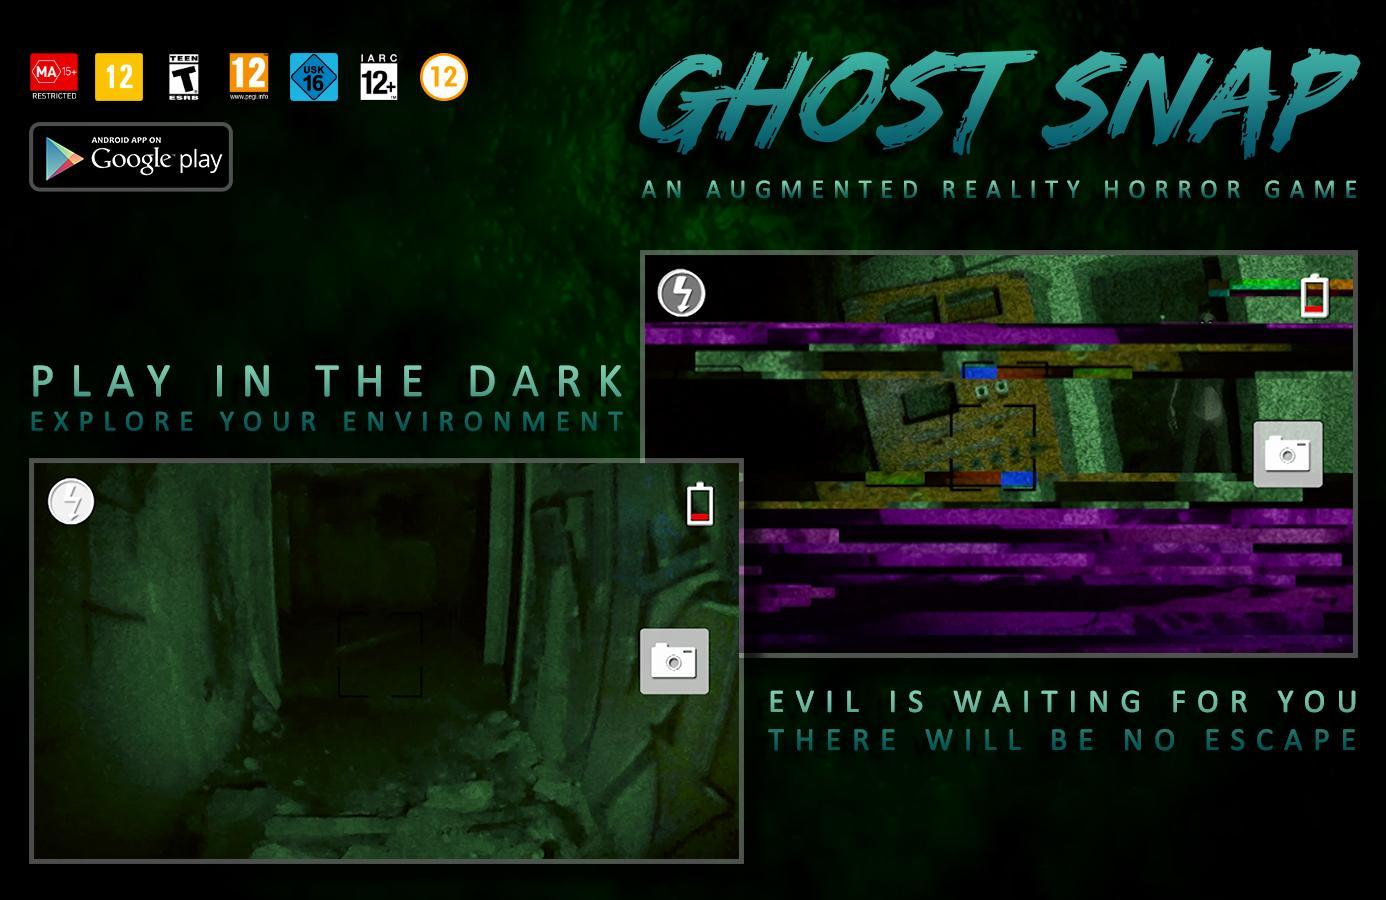 Ghost Snap AR Horror Survival for Android - APK Download